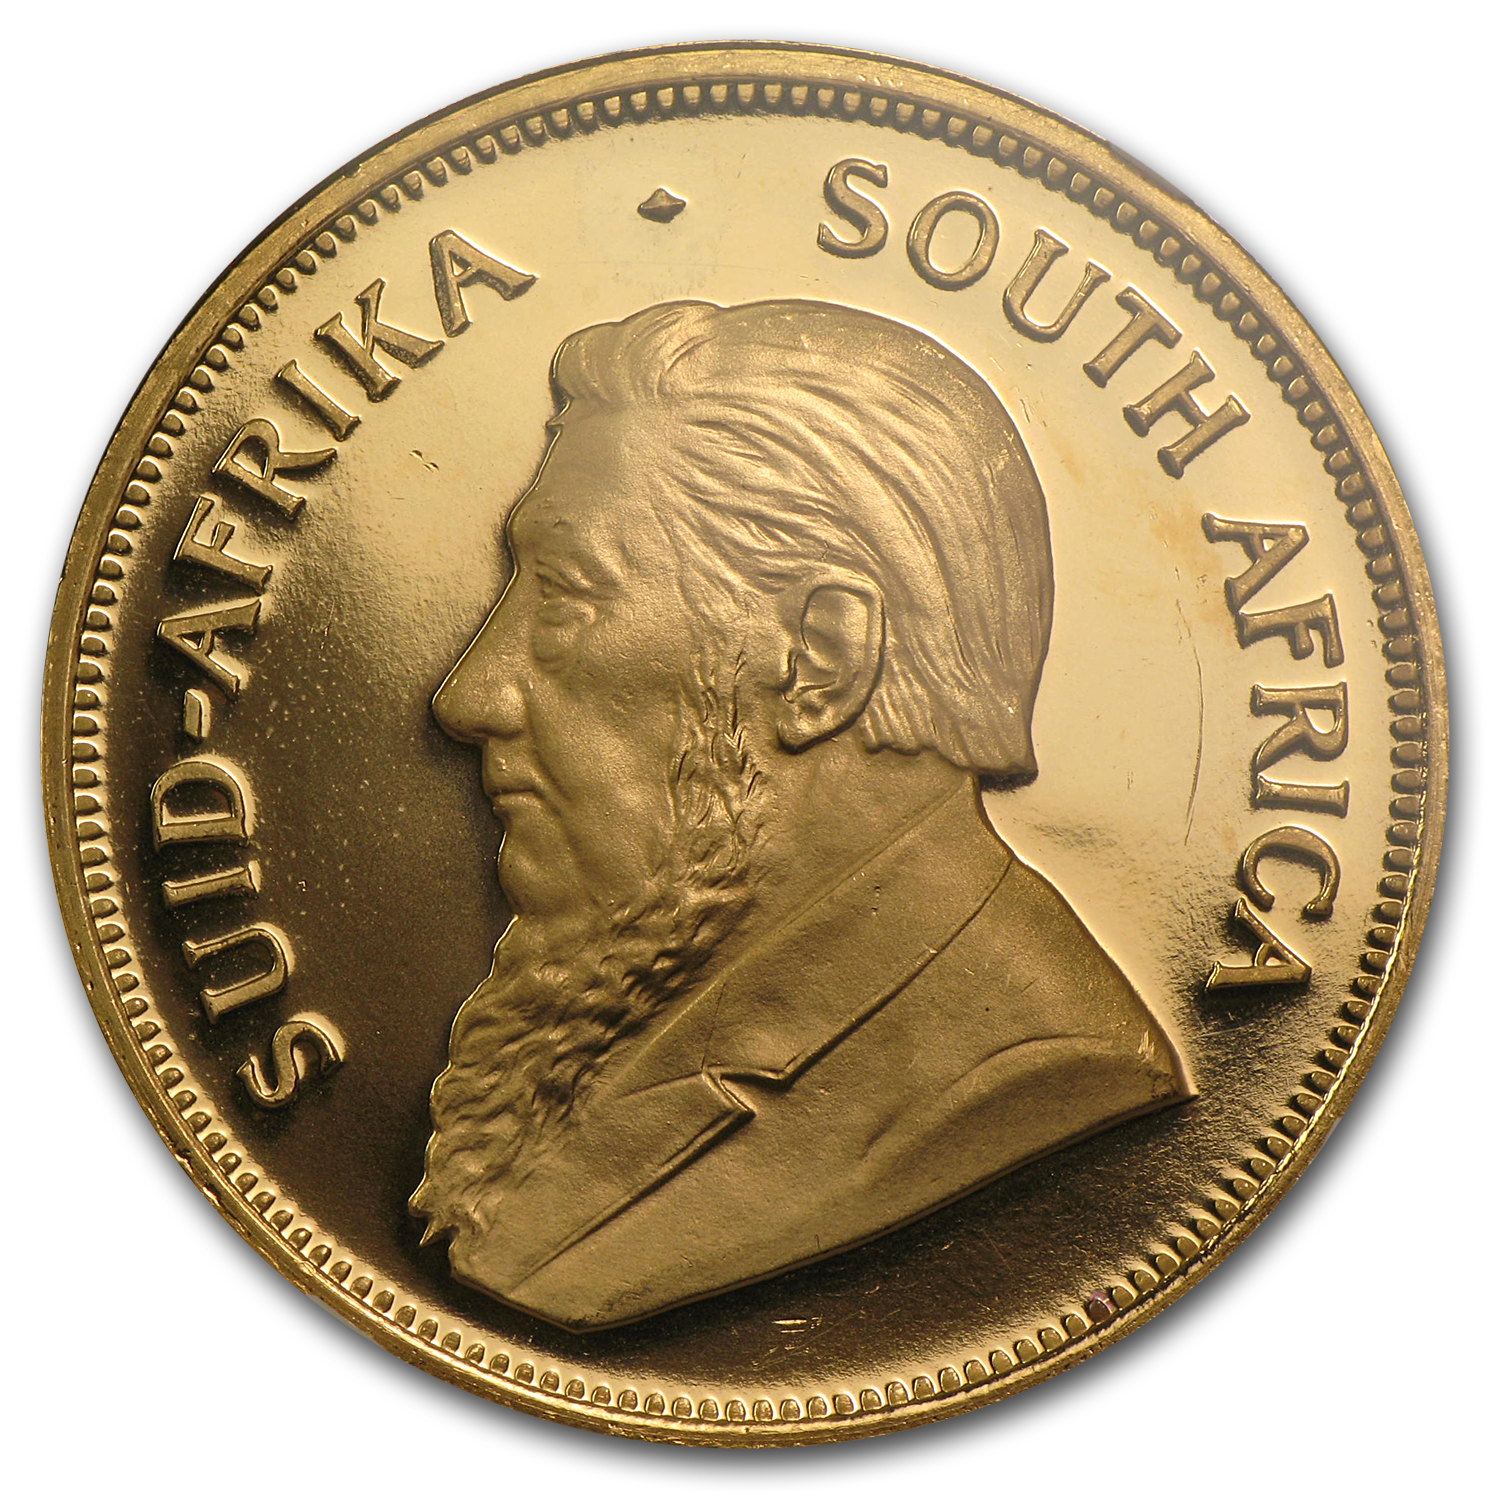 1987 South Africa 1 oz Gold Krugerrand PF-66 NGC